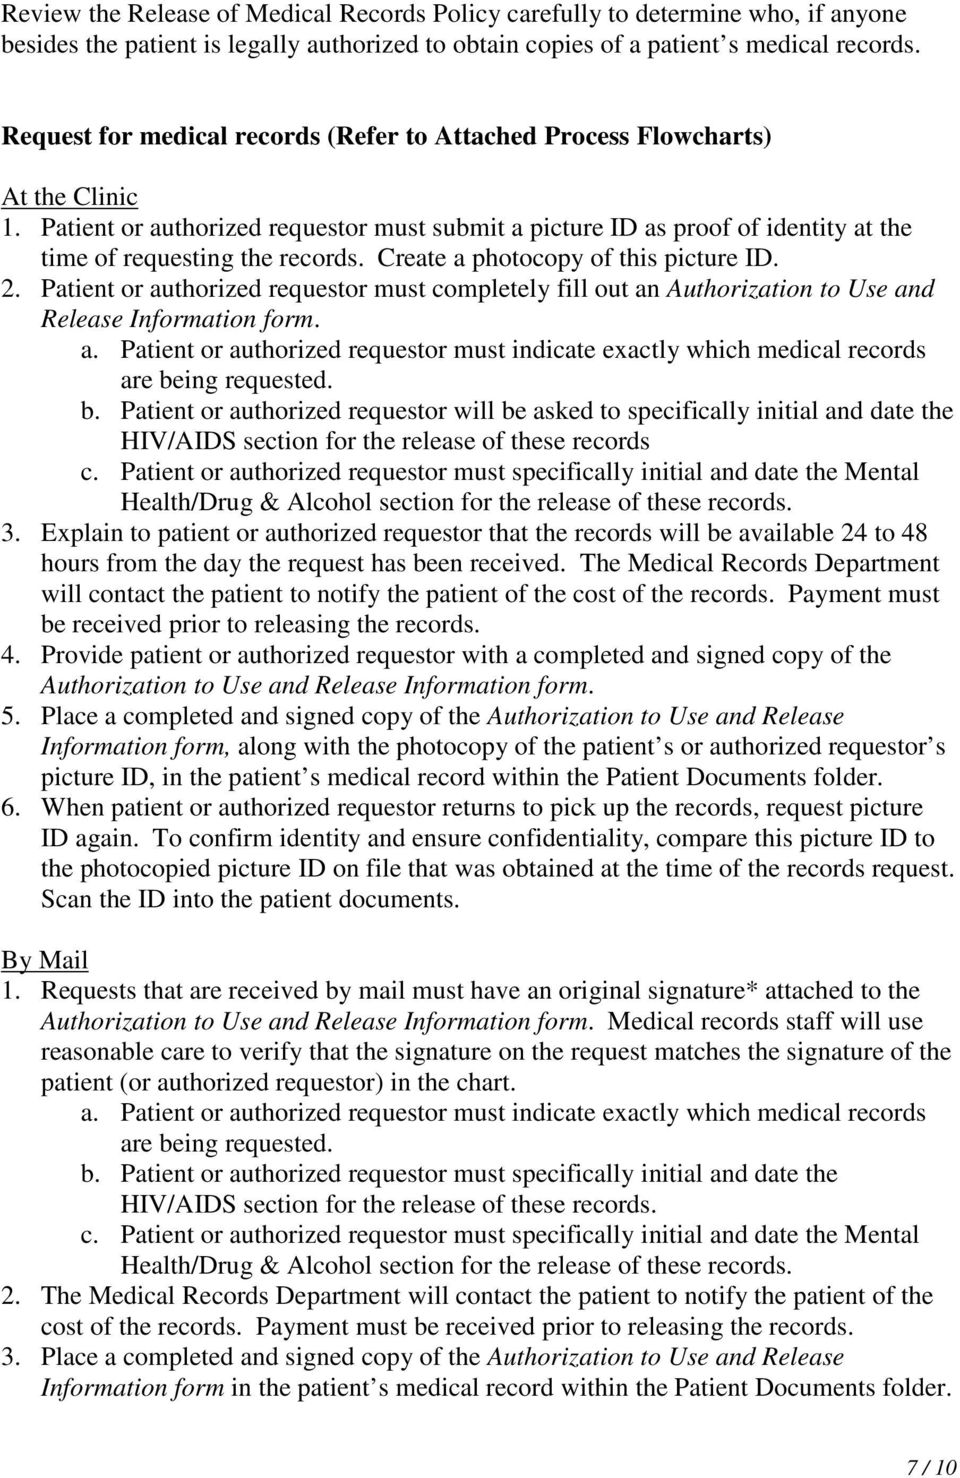 Create a photocopy of this picture ID. 2. Patient or authorized requestor must completely fill out an Authorization to Use and Release Information form. a. Patient or authorized requestor must indicate exactly which medical records are being requested.